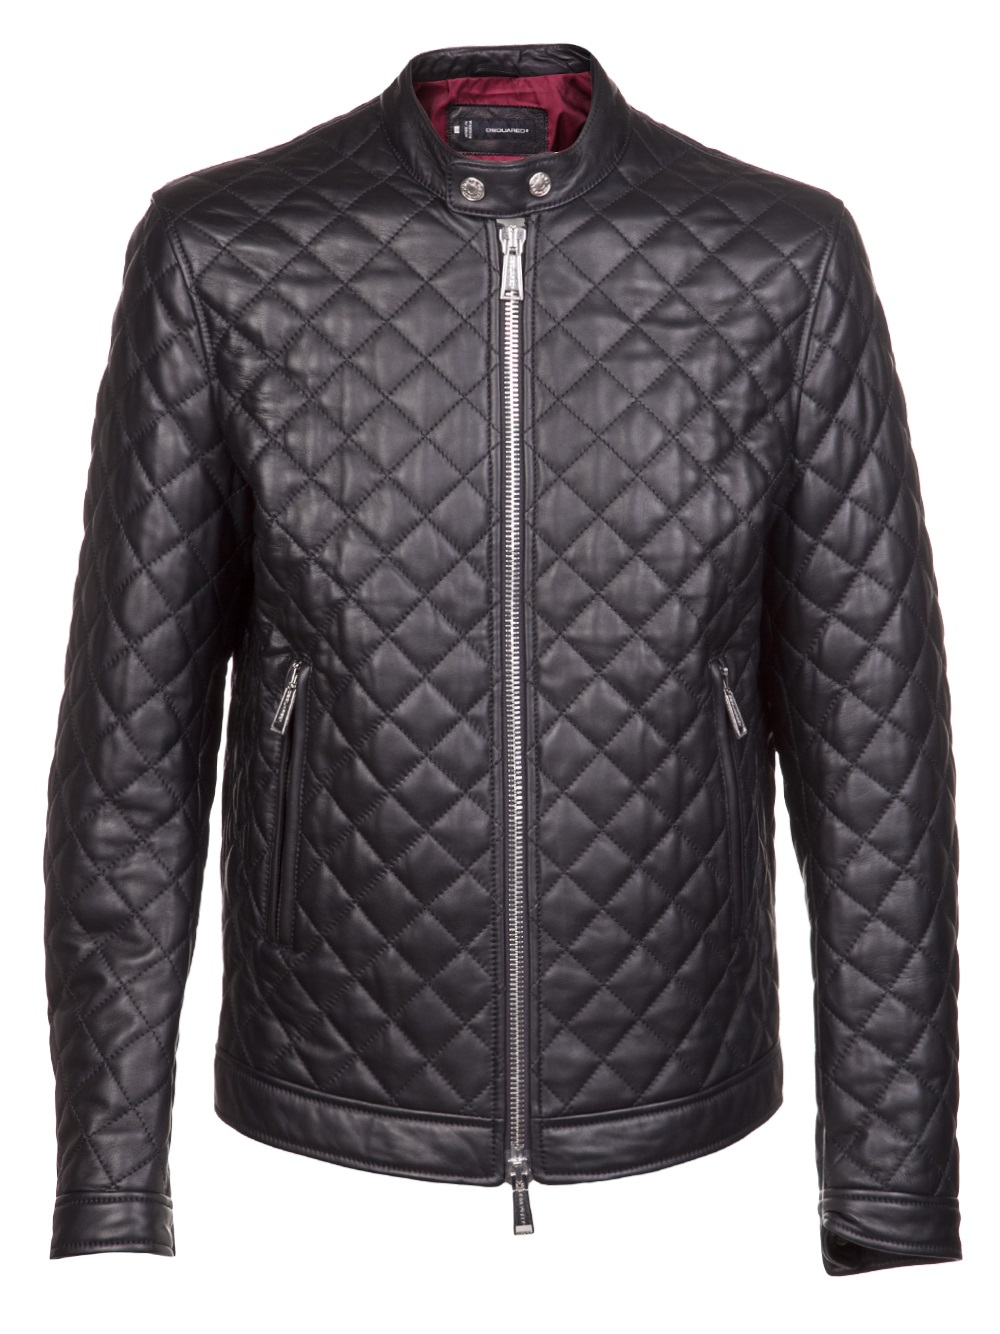 Lyst - Dsquared² Quilted Leather Jacket in Black for Men : leather quilted jacket men - Adamdwight.com